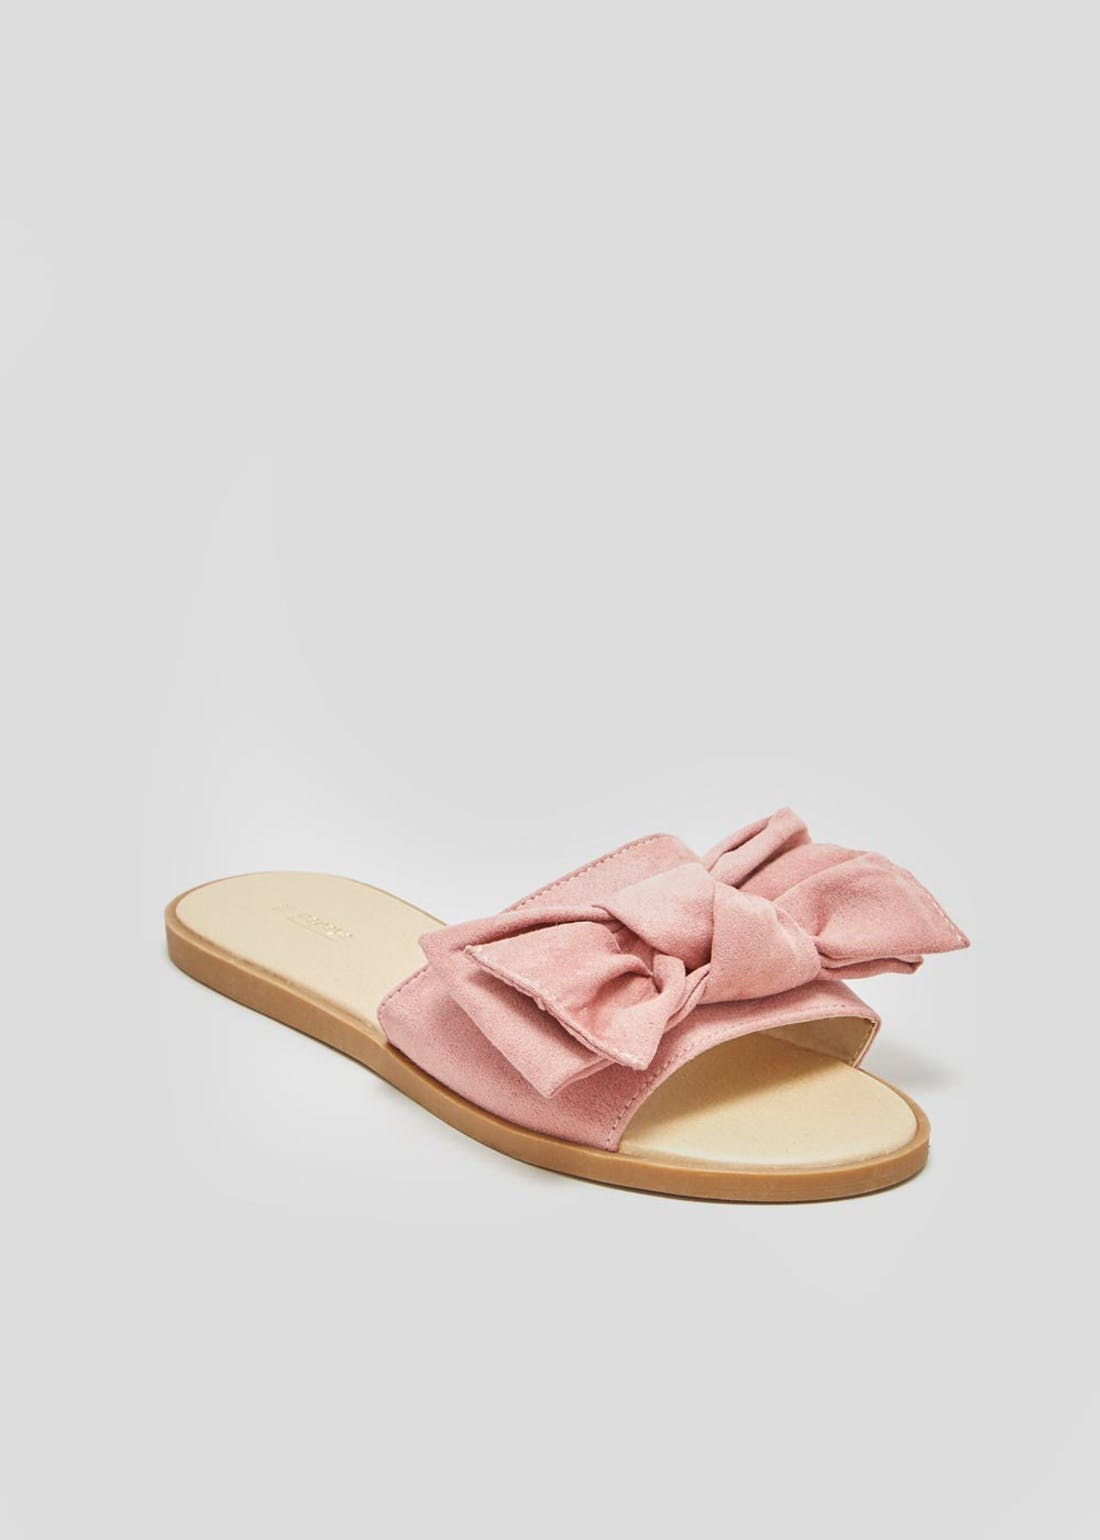 Knot Bow Sliders